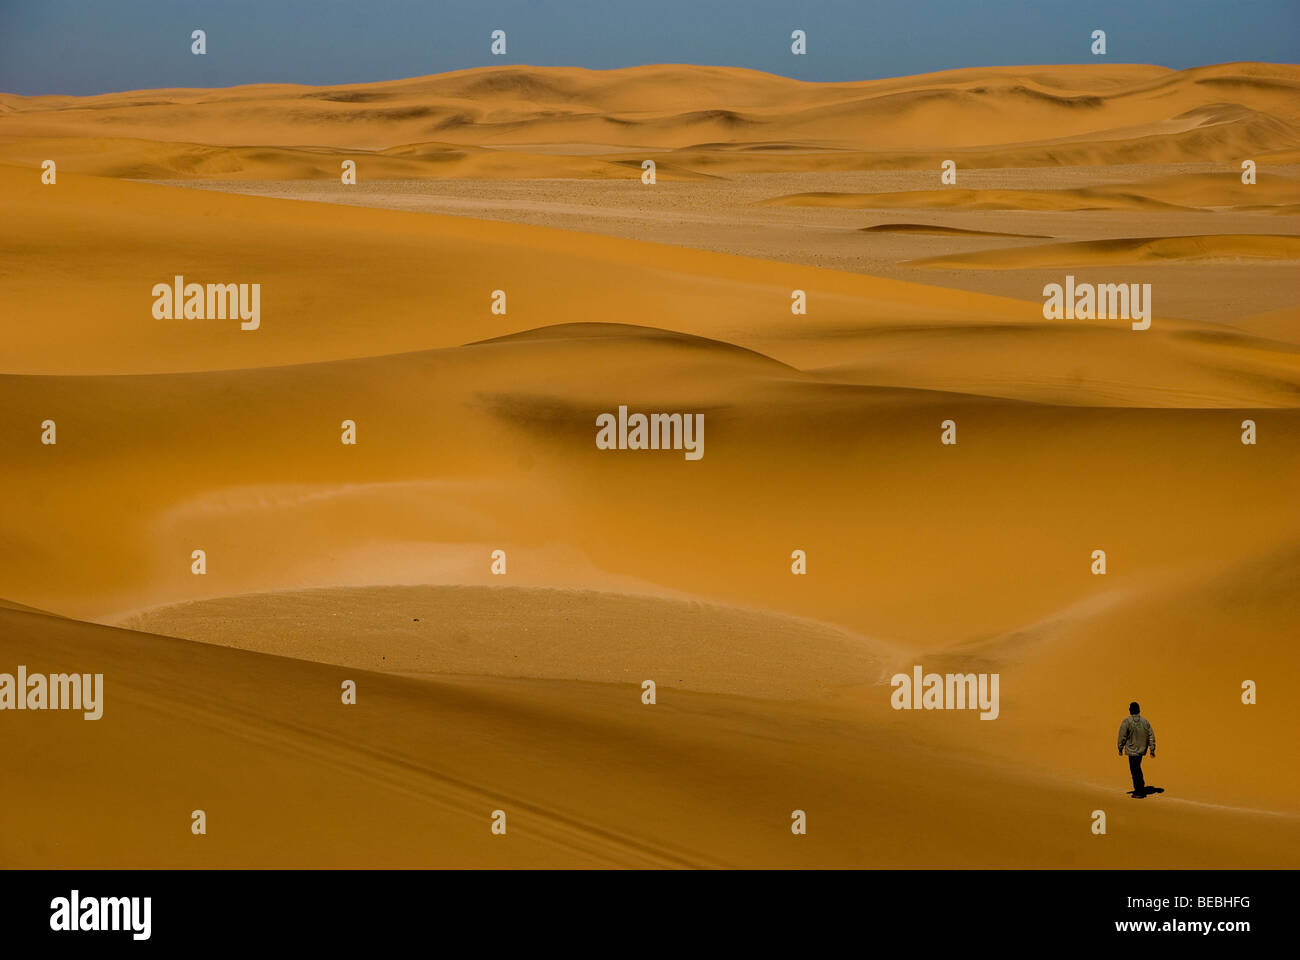 Tourist in desert dunes near Swakopmund, Namib Naukluft National Park, Namibia - Stock Image